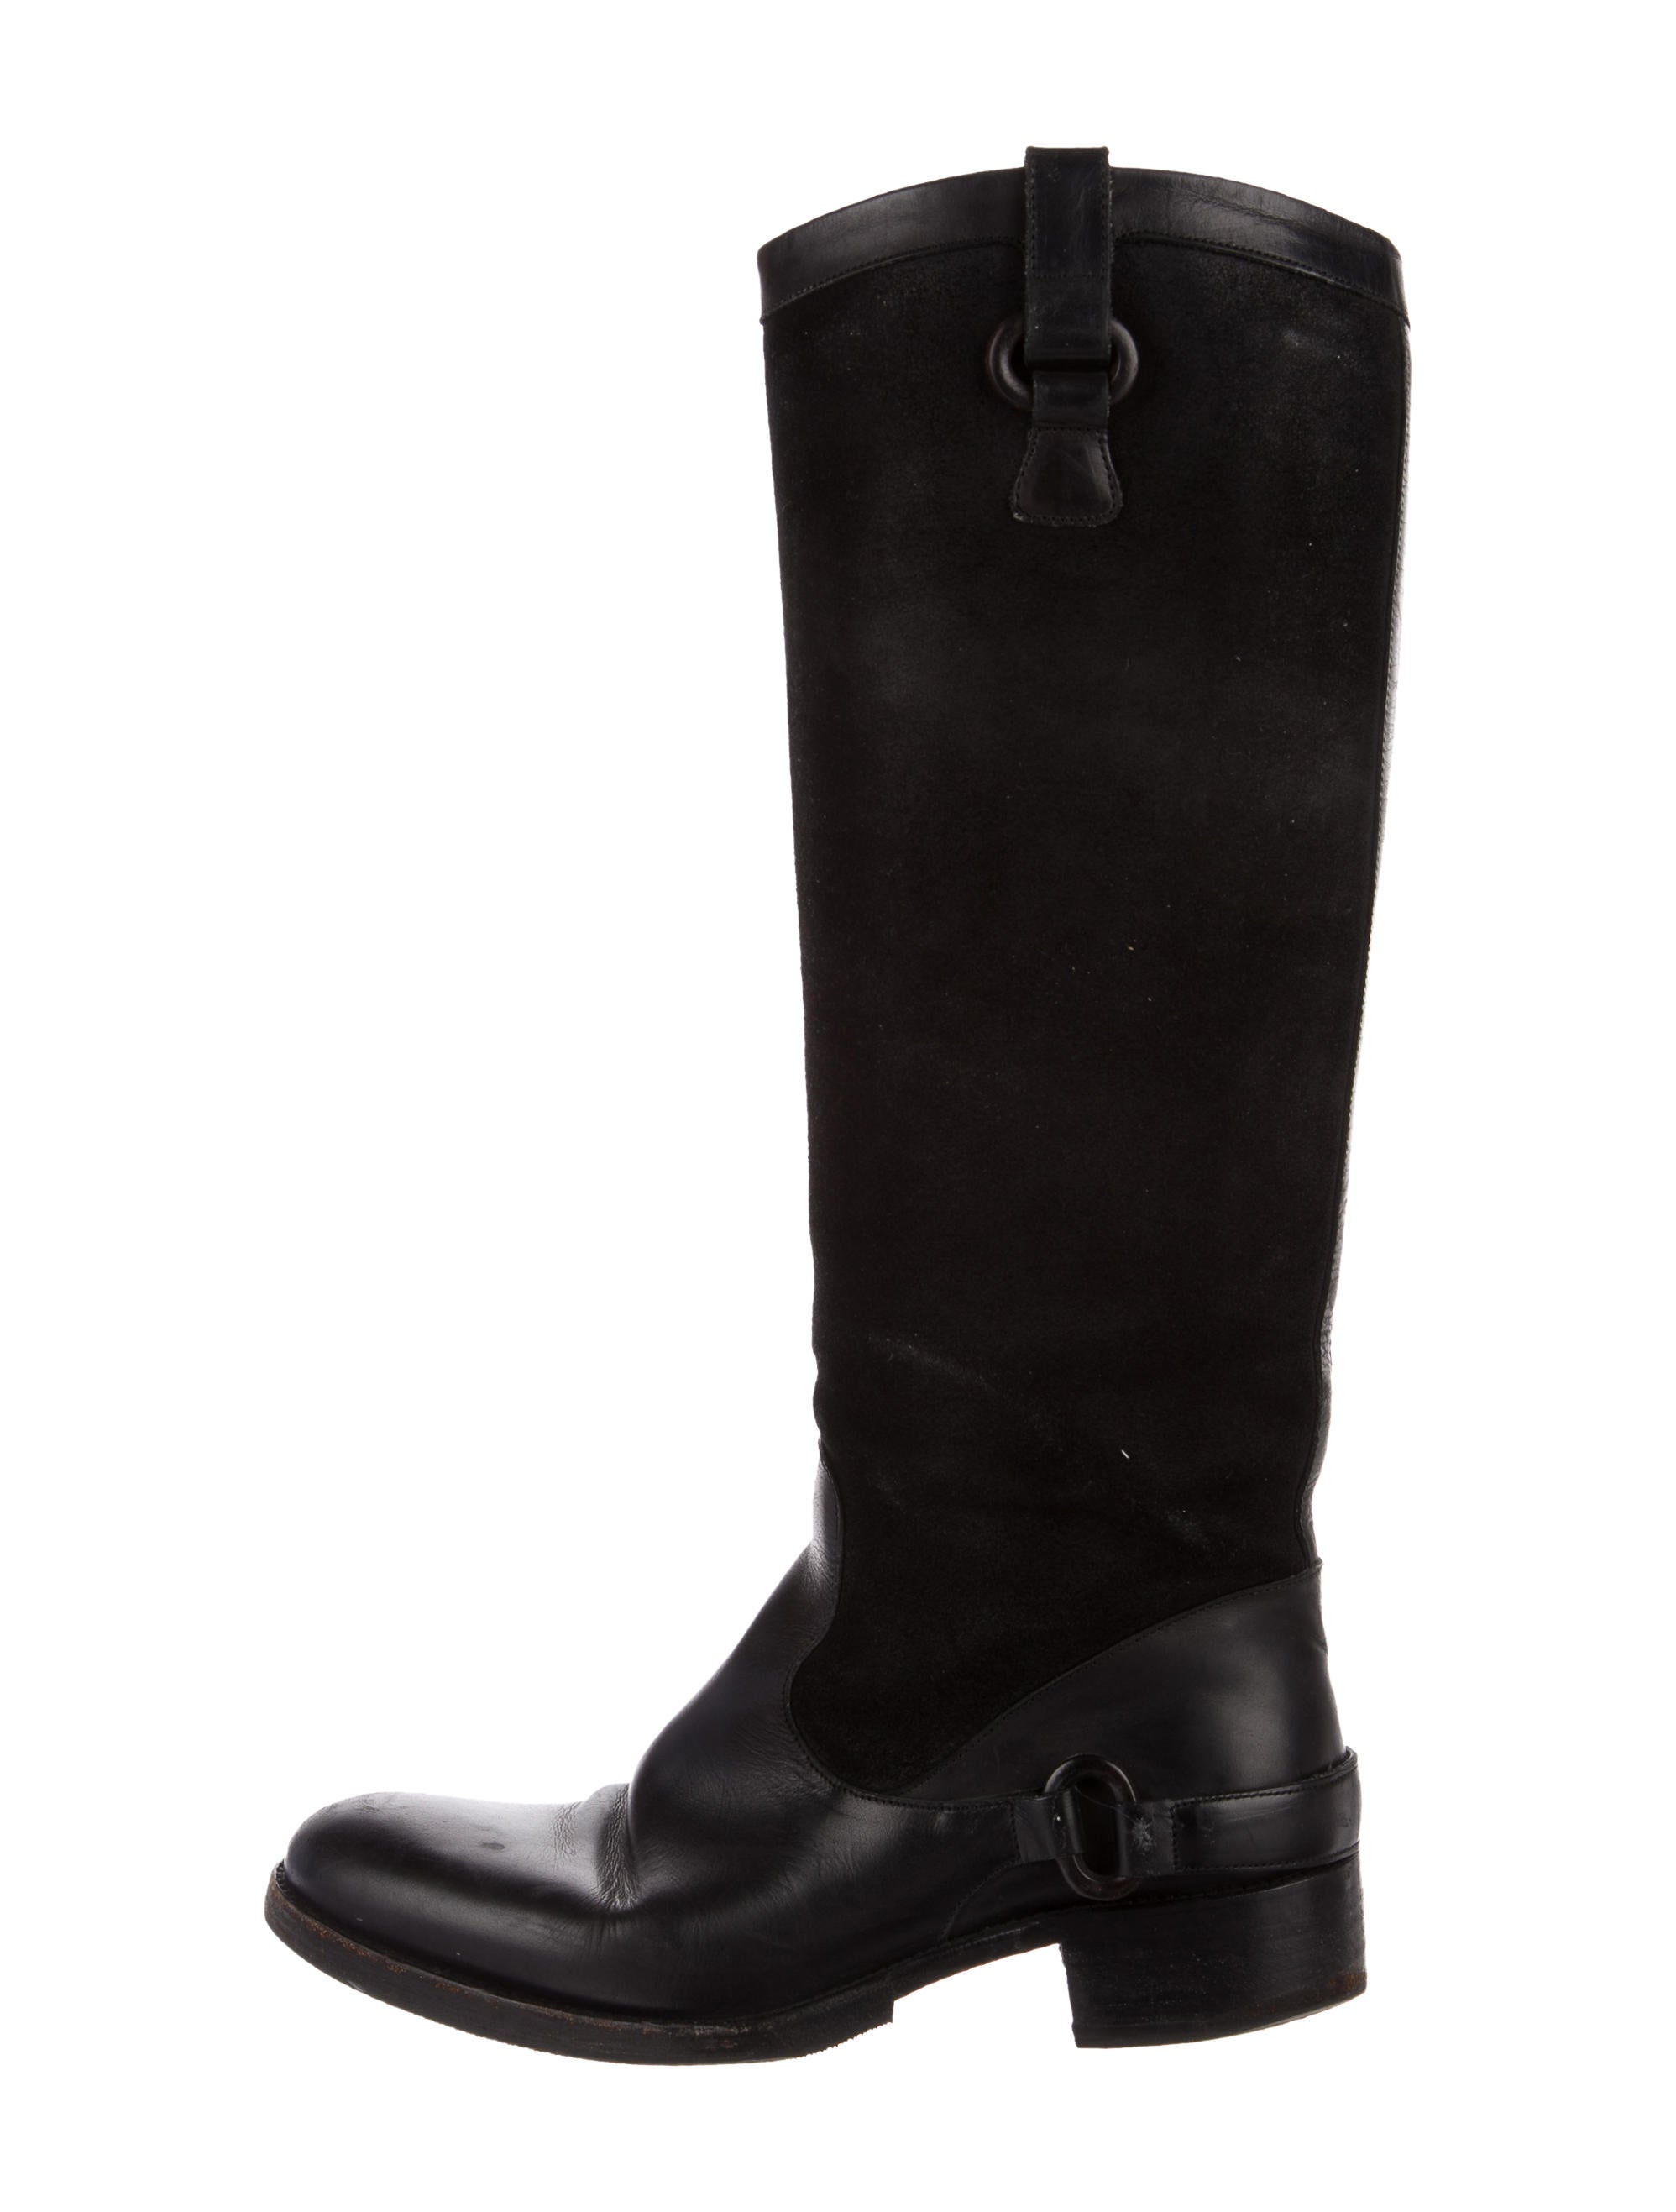 Sartore Suede Round-Toe Knee-High Boots outlet 2015 new cheap online shop 27oq6ib